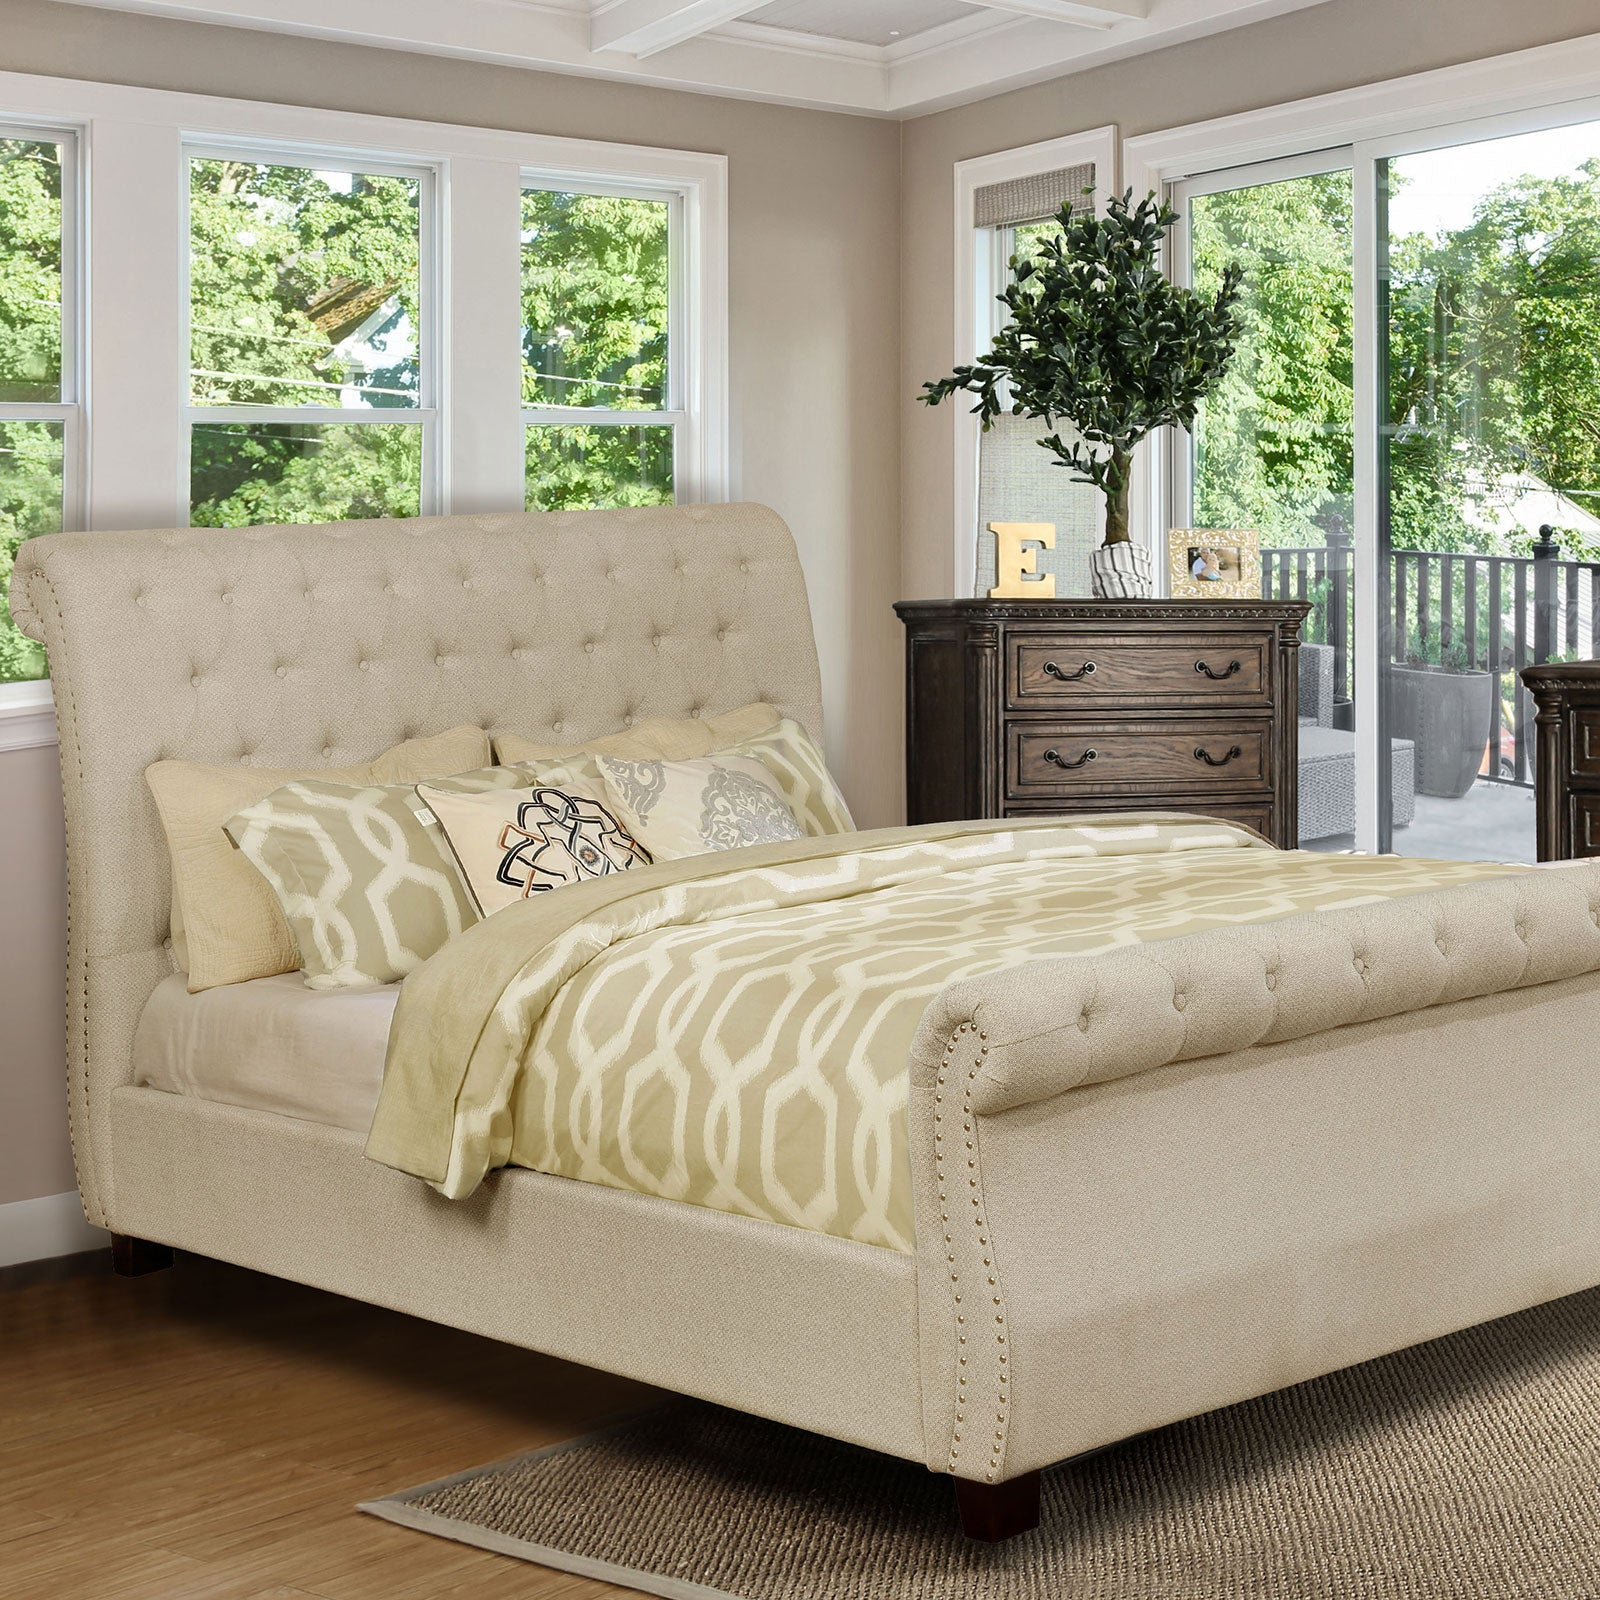 Emanuela 5 Pc. Queen Bedroom Set with Chest - InteriorDesignsToGo.com